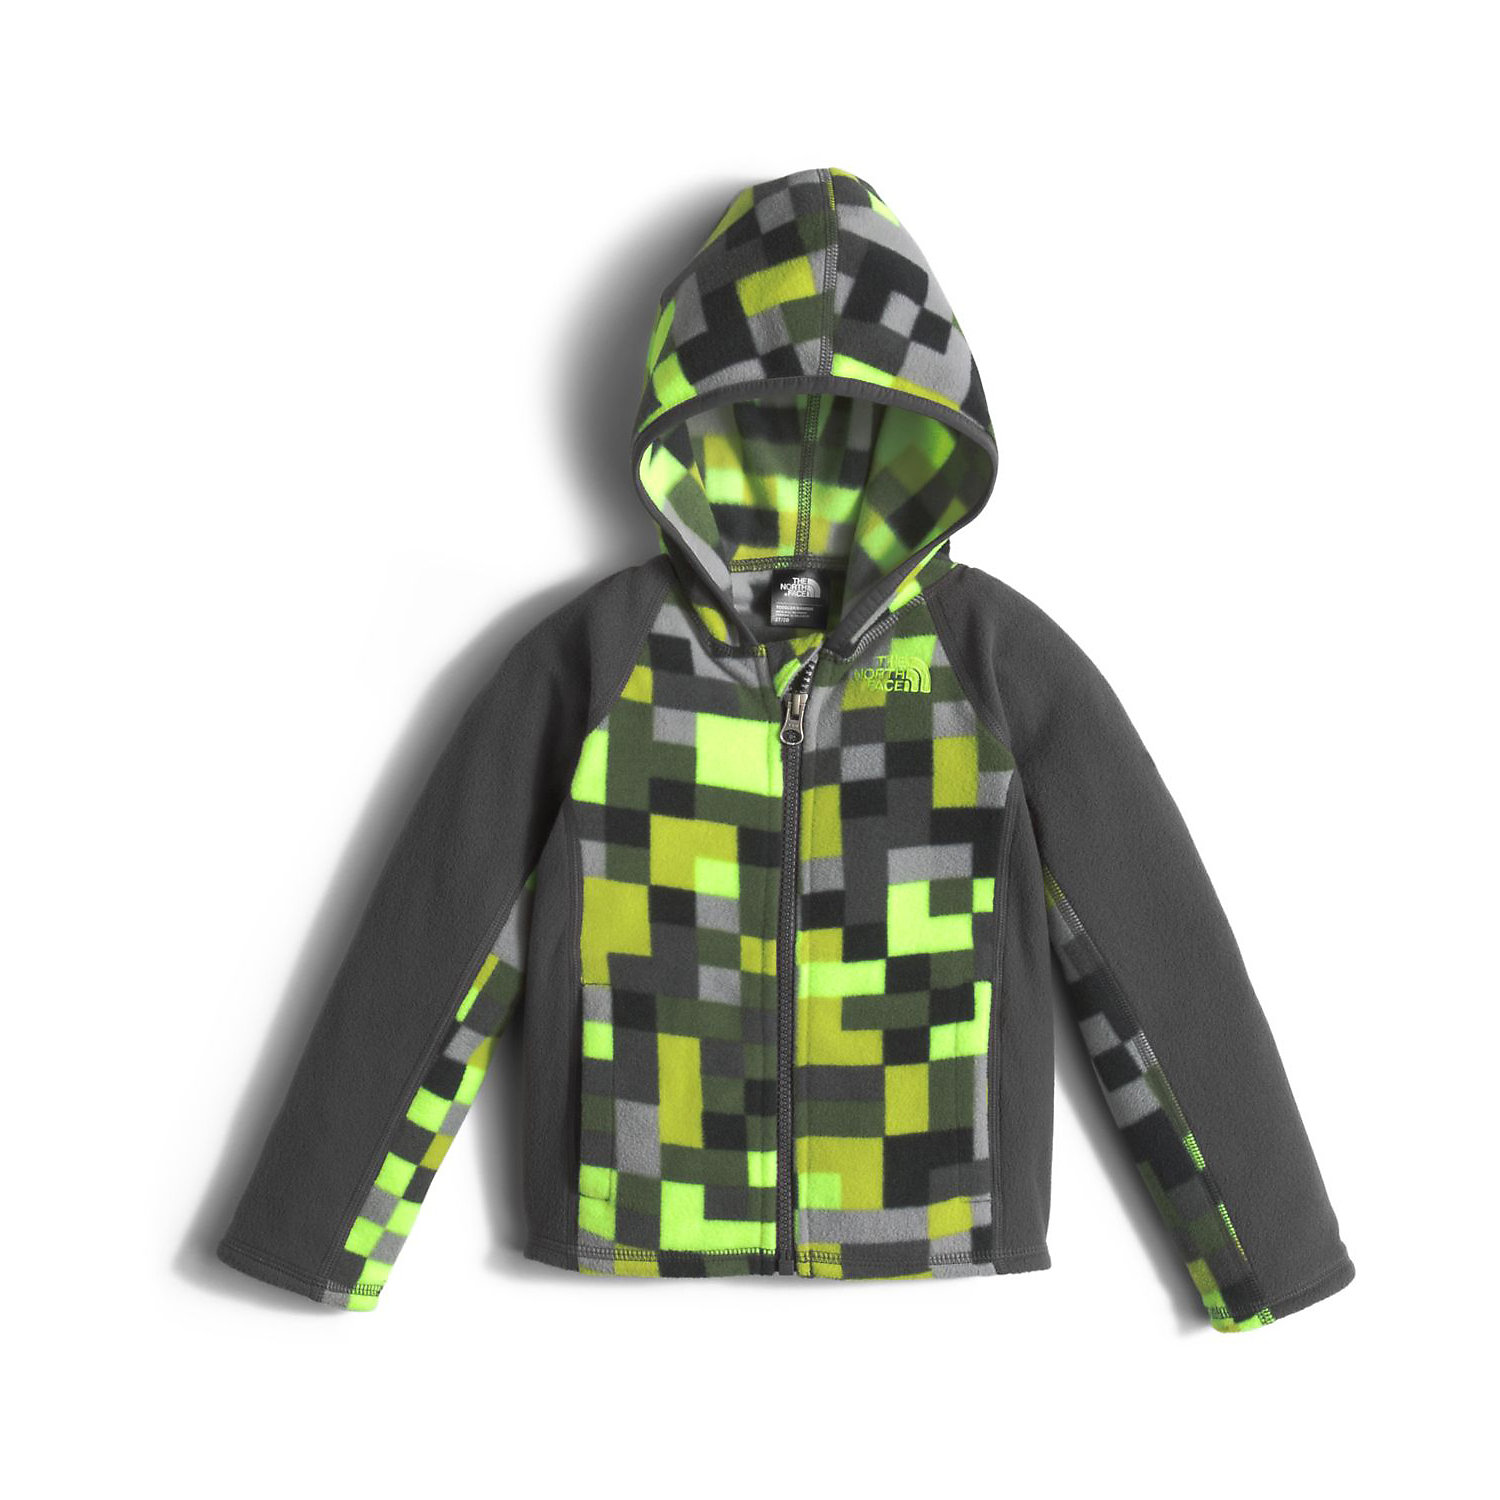 53faa4fed The North Face Toddler Glacier Full Zip Hoodie - Moosejaw